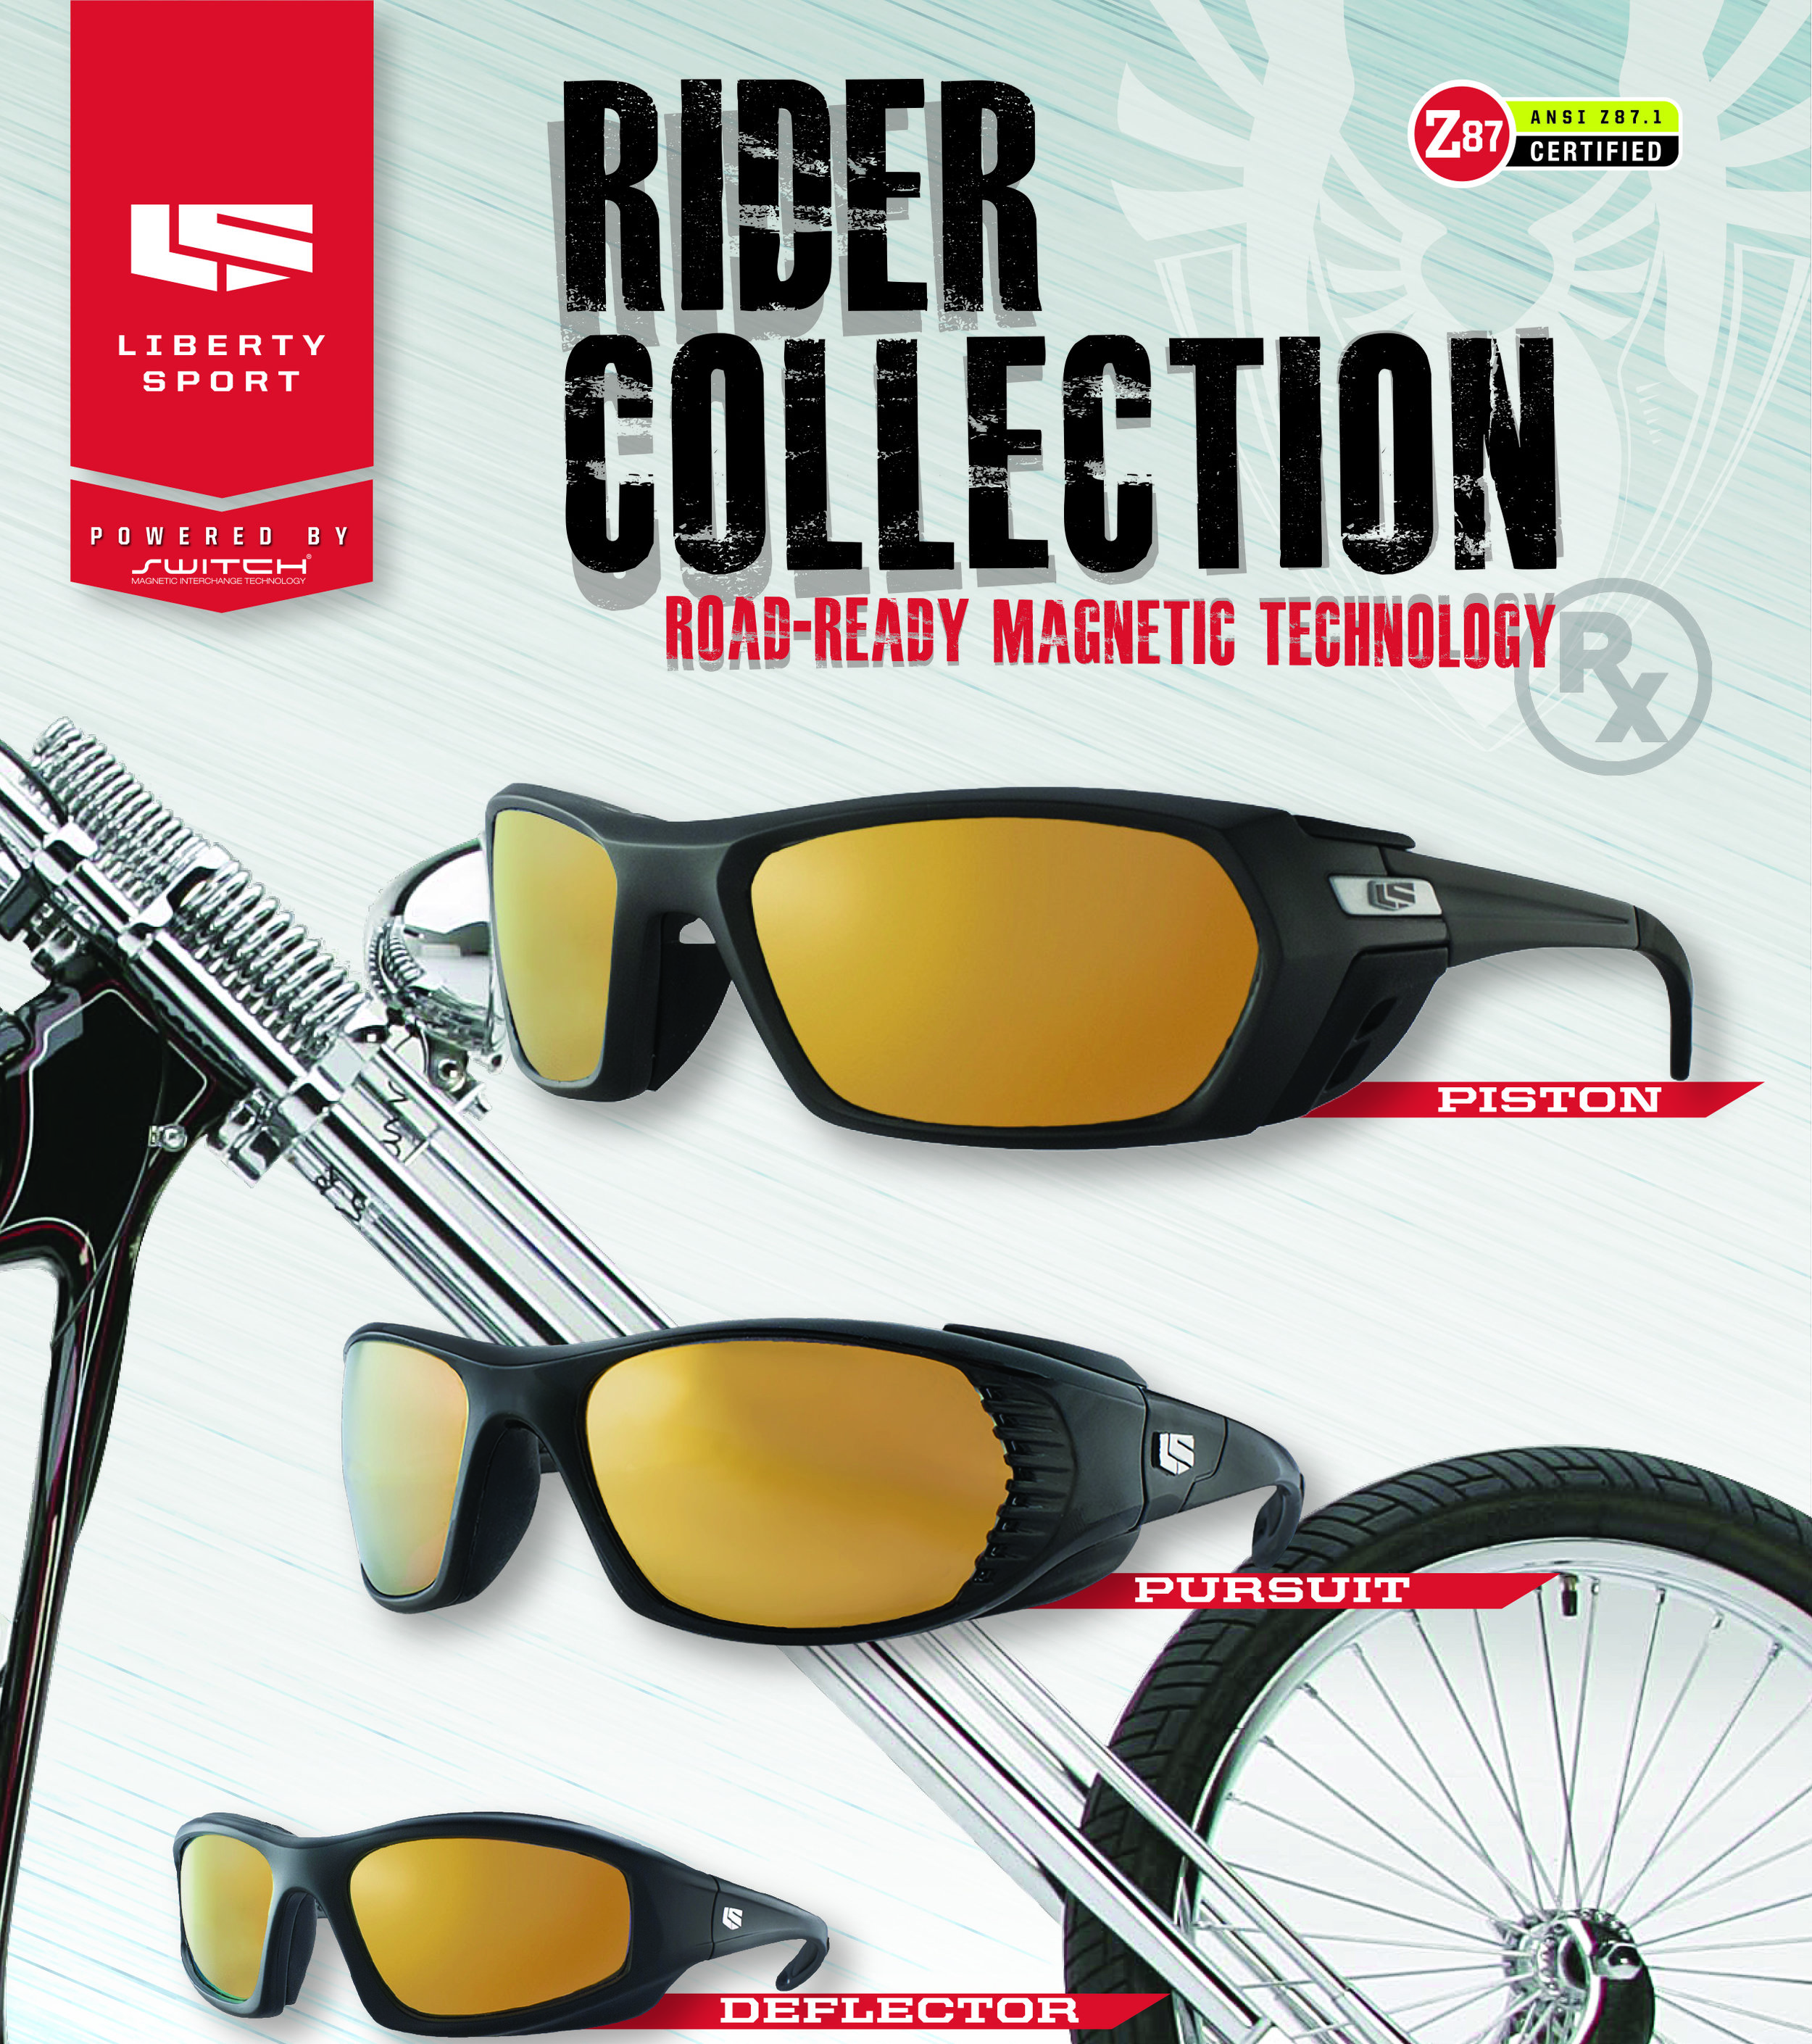 rider collection_ad slick copy